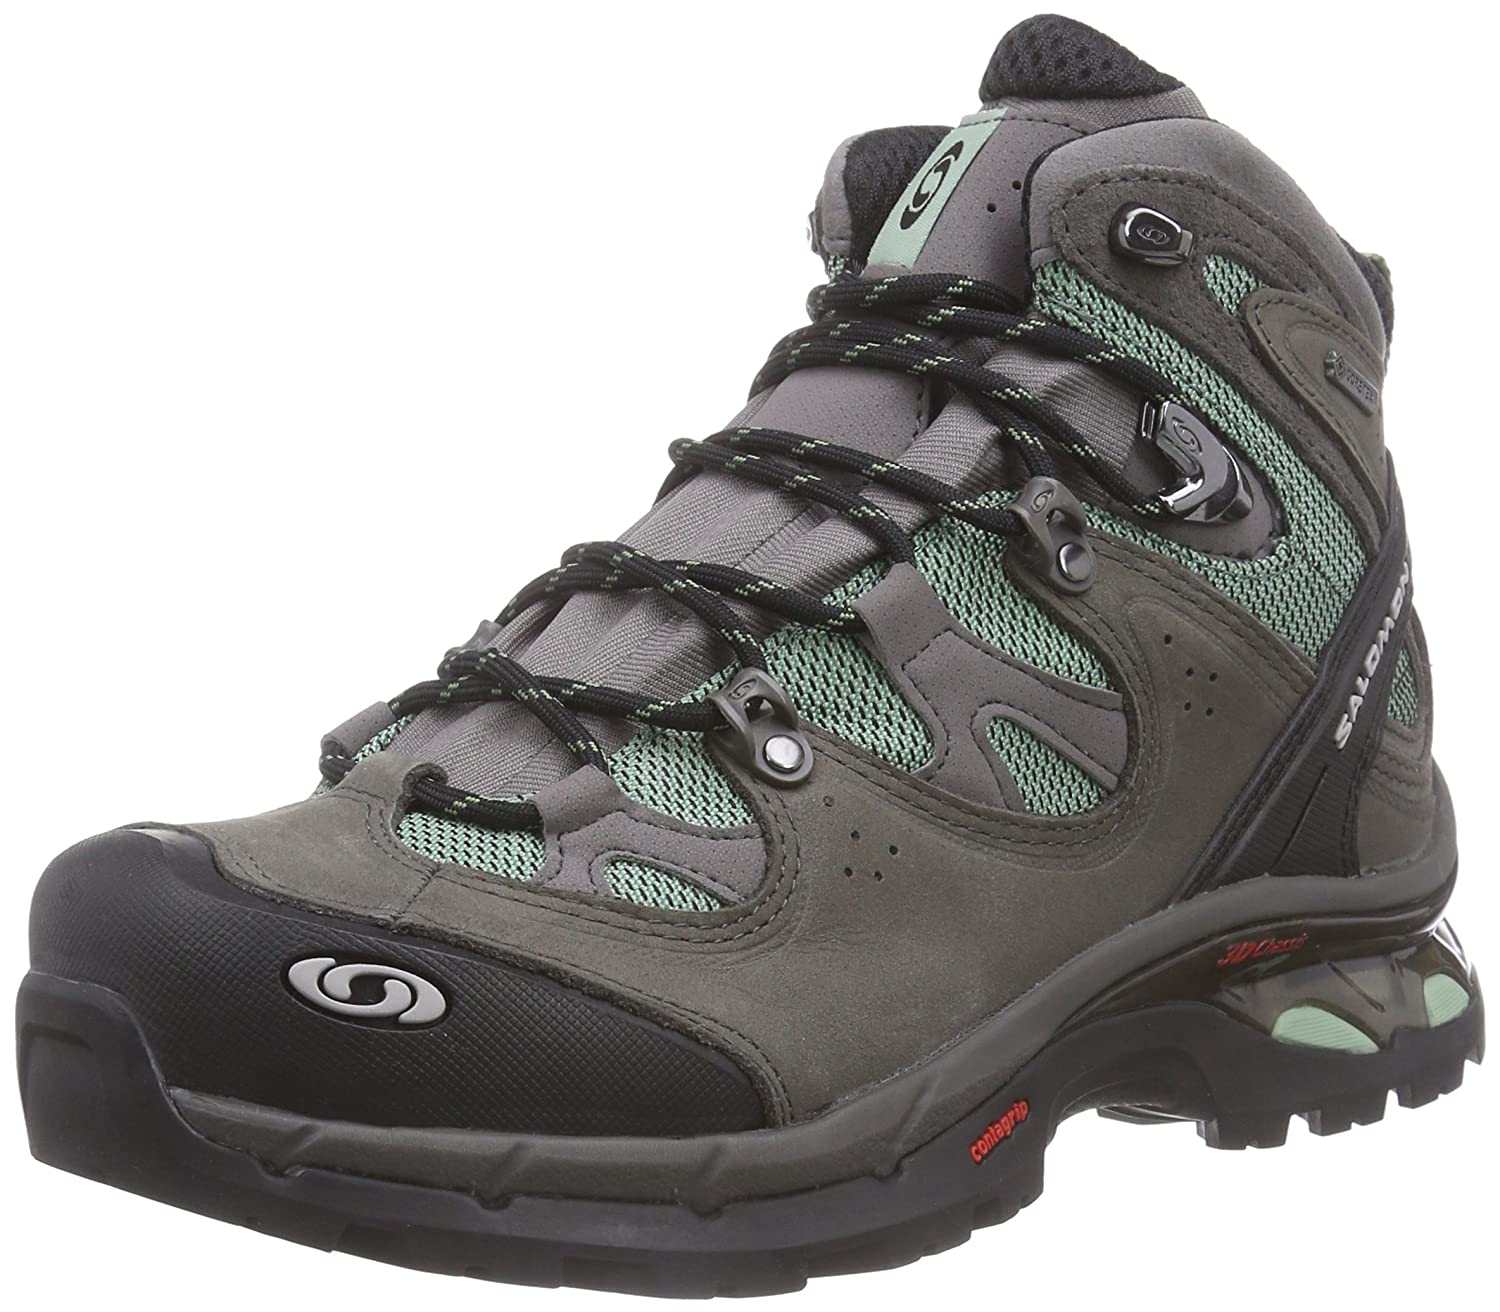 Salomon Women's Comet 3D Lady GTX Backpacking Boot COMET 3D LADY GTX®-W